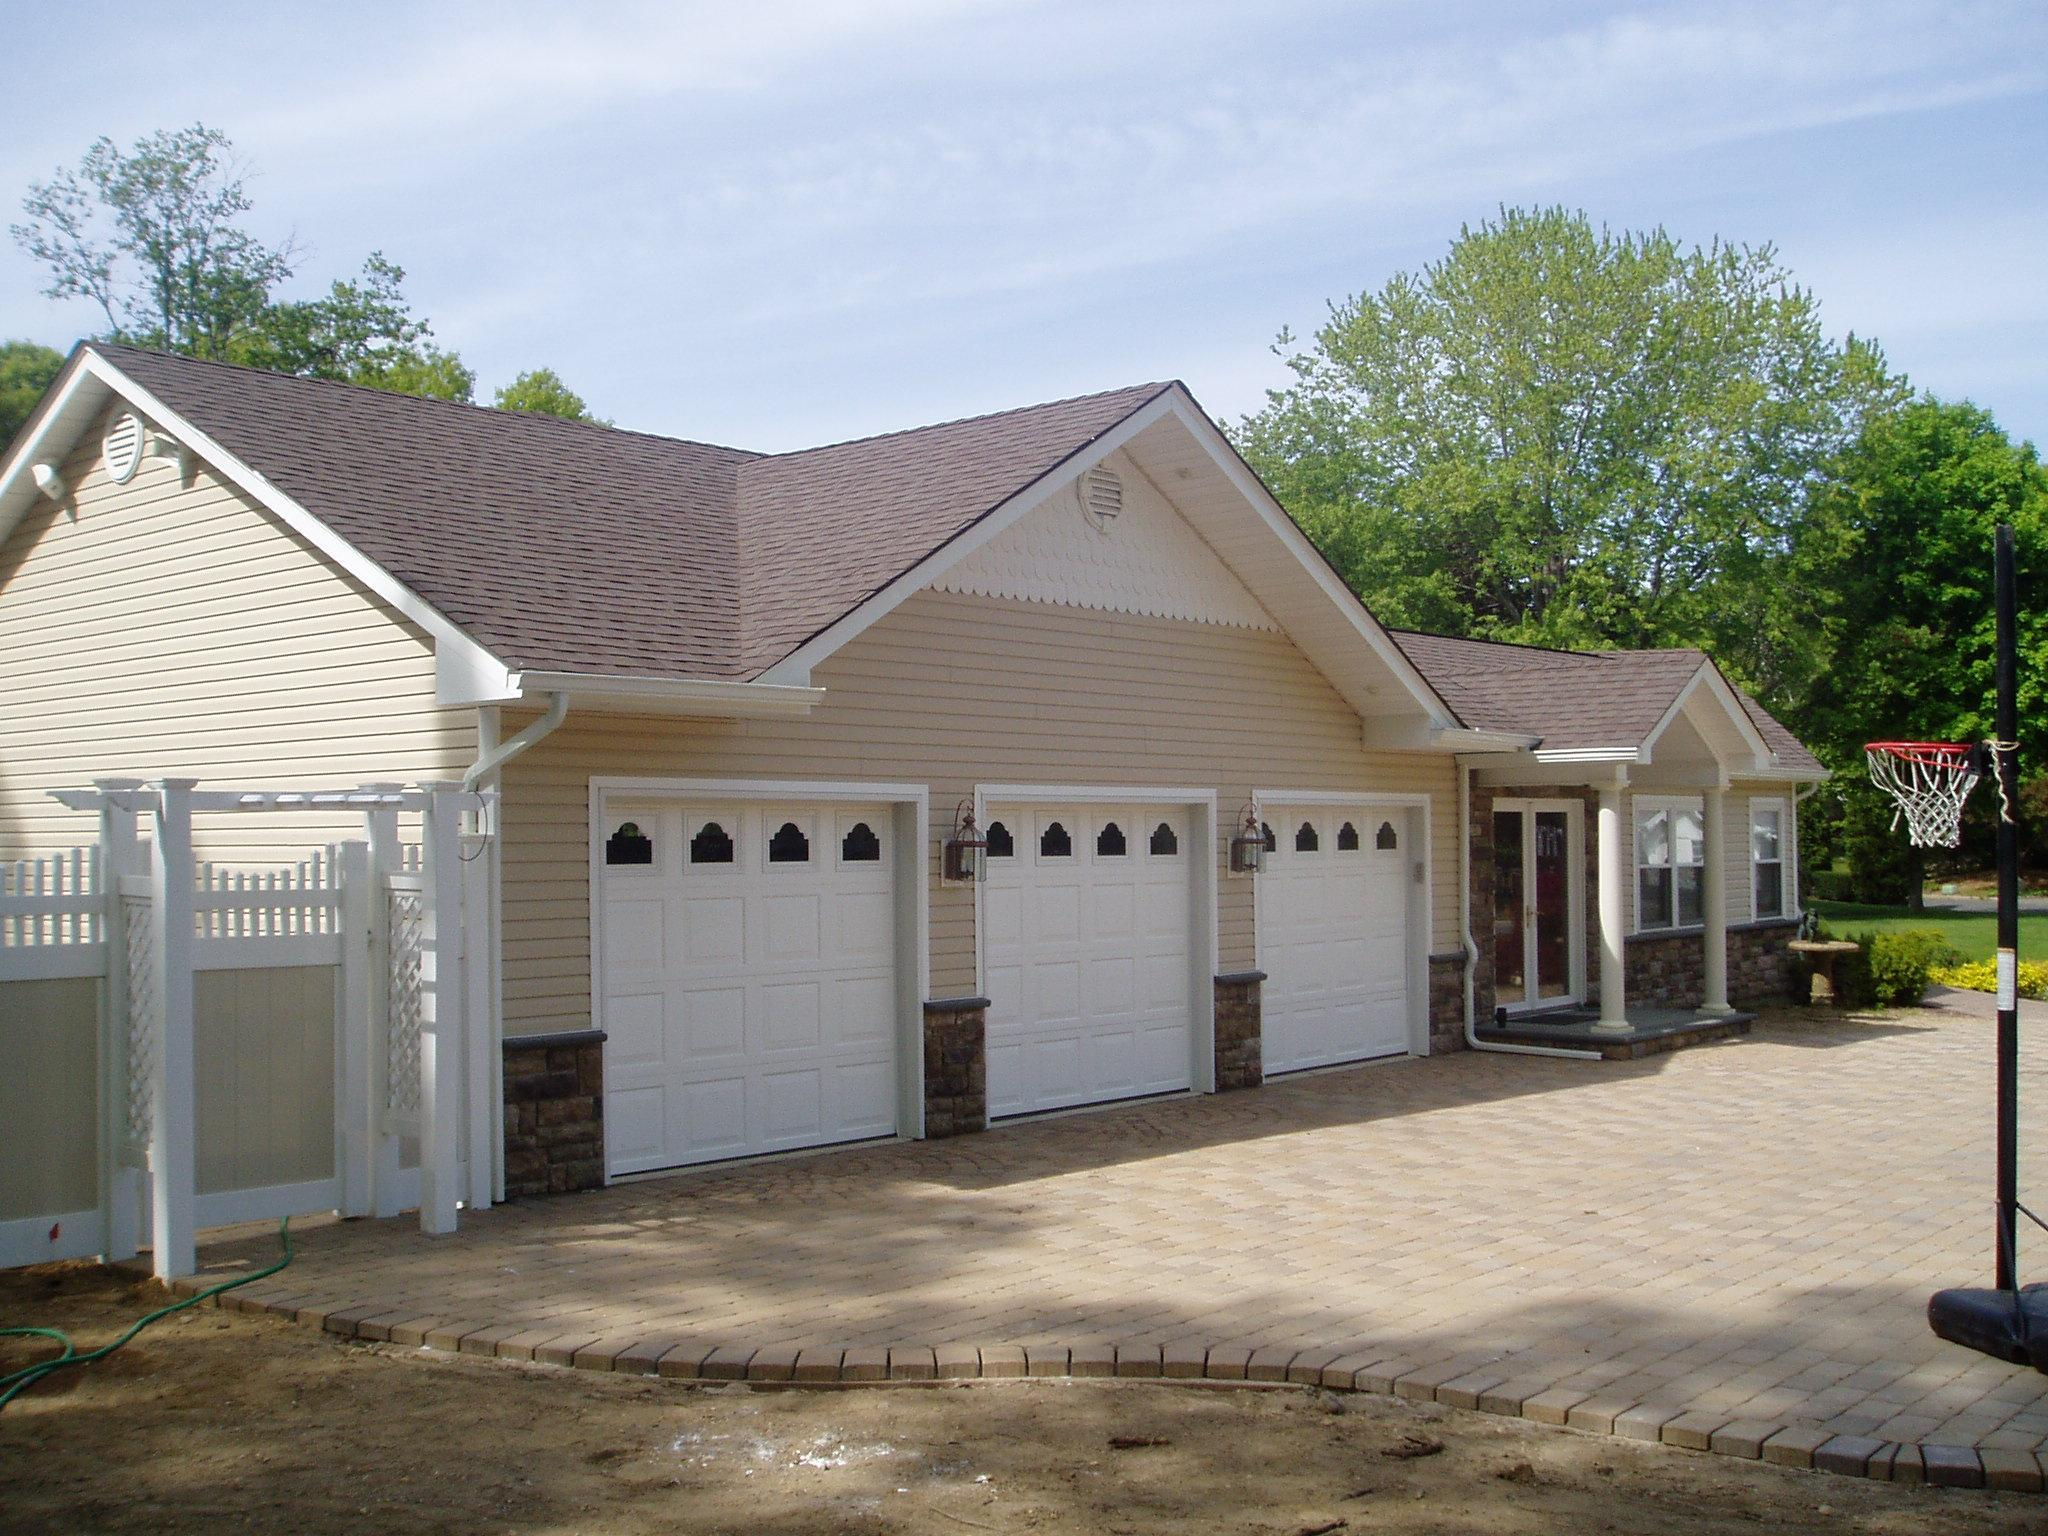 This  is a three car garage and family room and bedroom expansion enhancing the overall look of the existing ranch home.